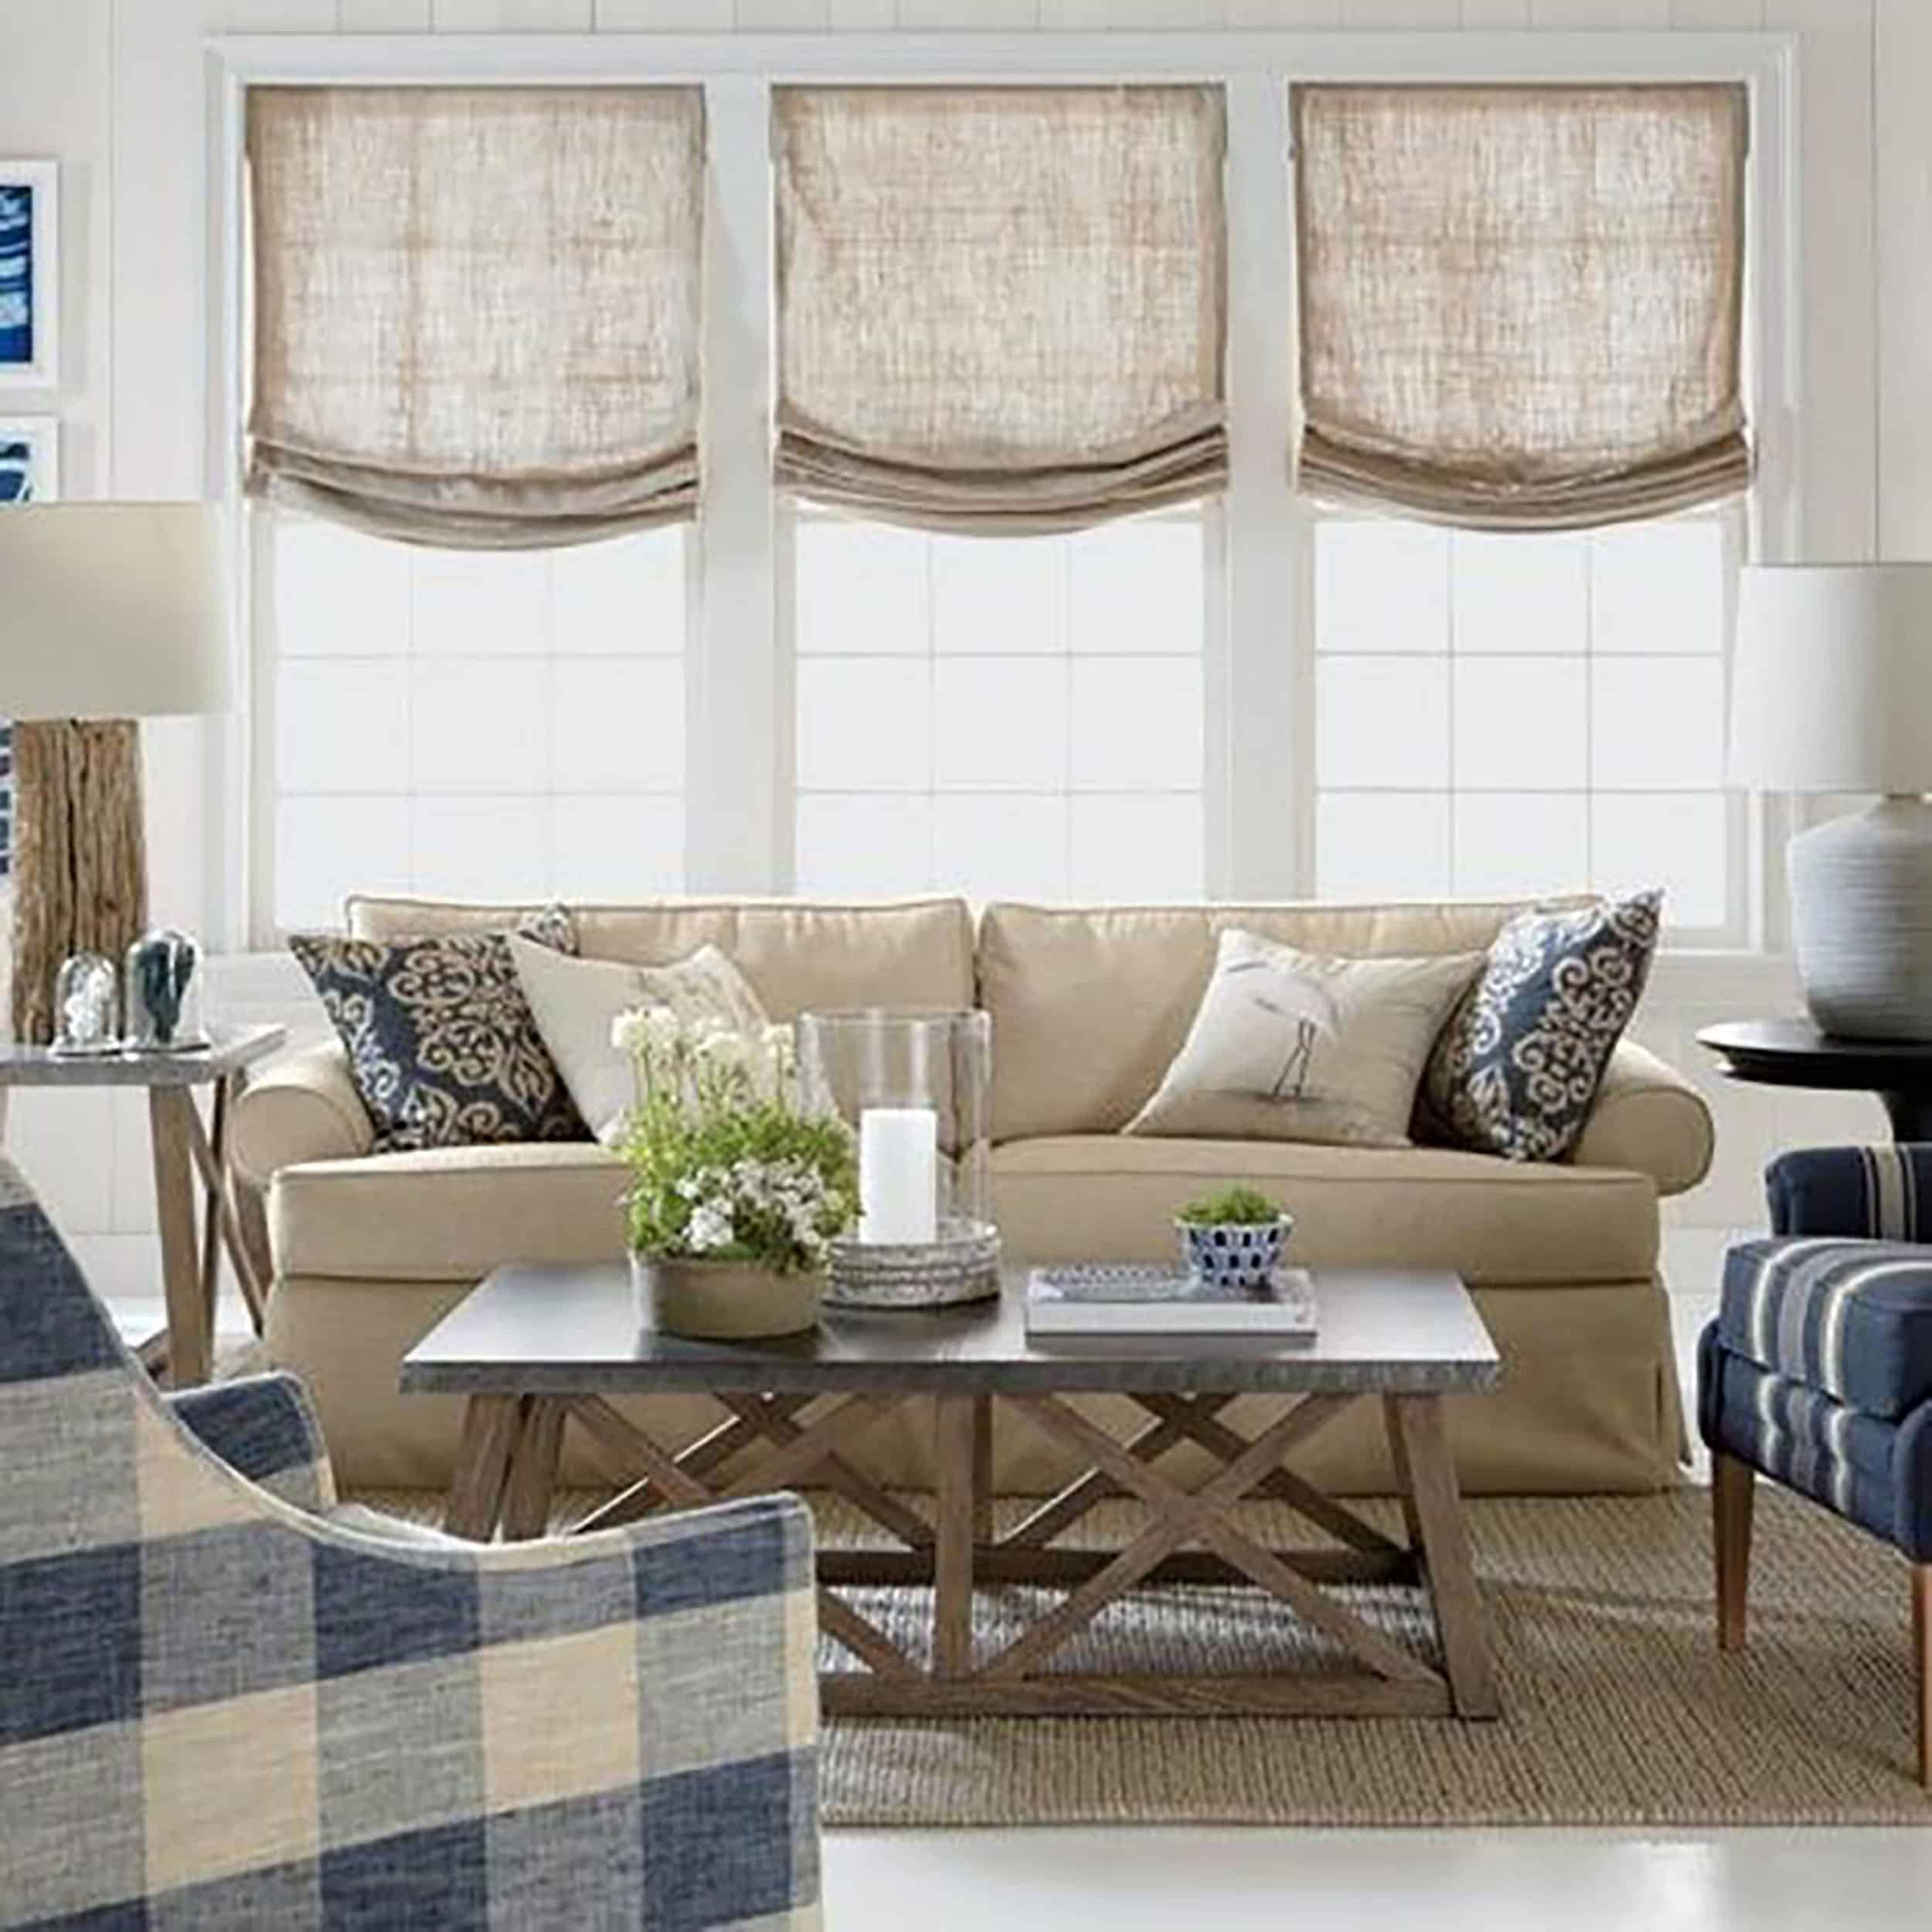 Emily Henderson Awkward Windows Wall Treatments Multiple Windows Good Examples 1